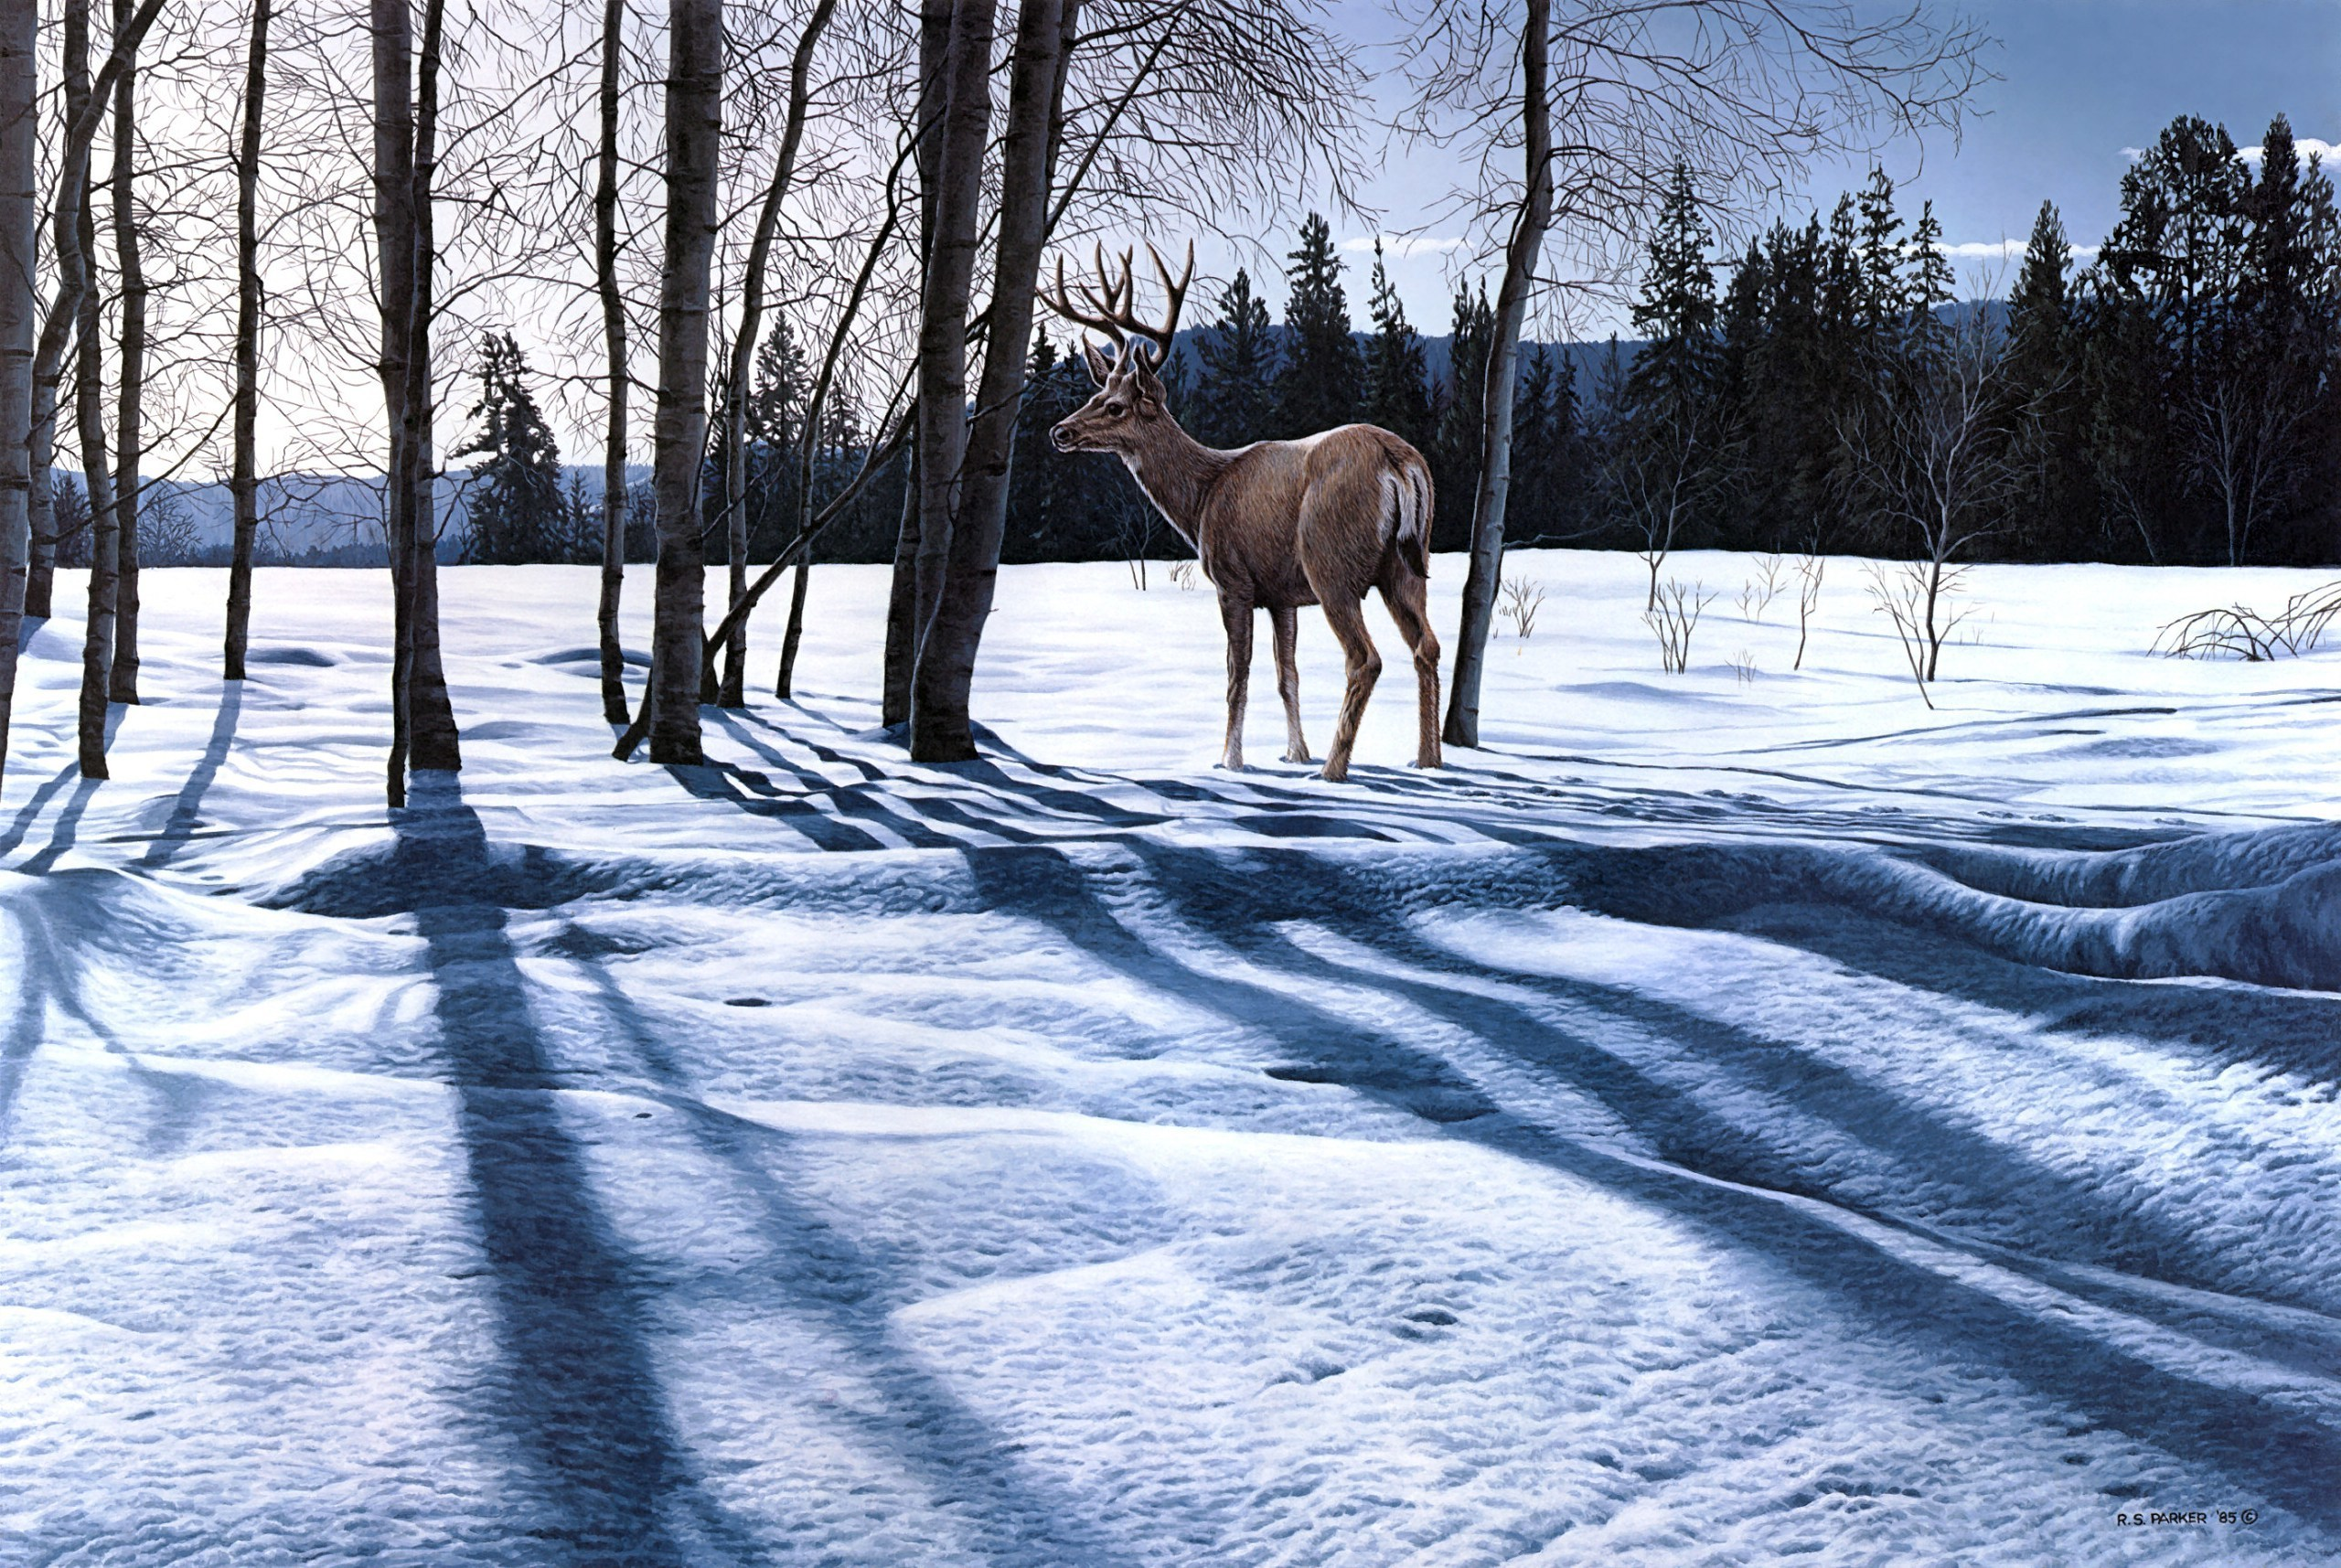 Landscape deer winter snow wallpaper 2560x1715 133377 2560x1715